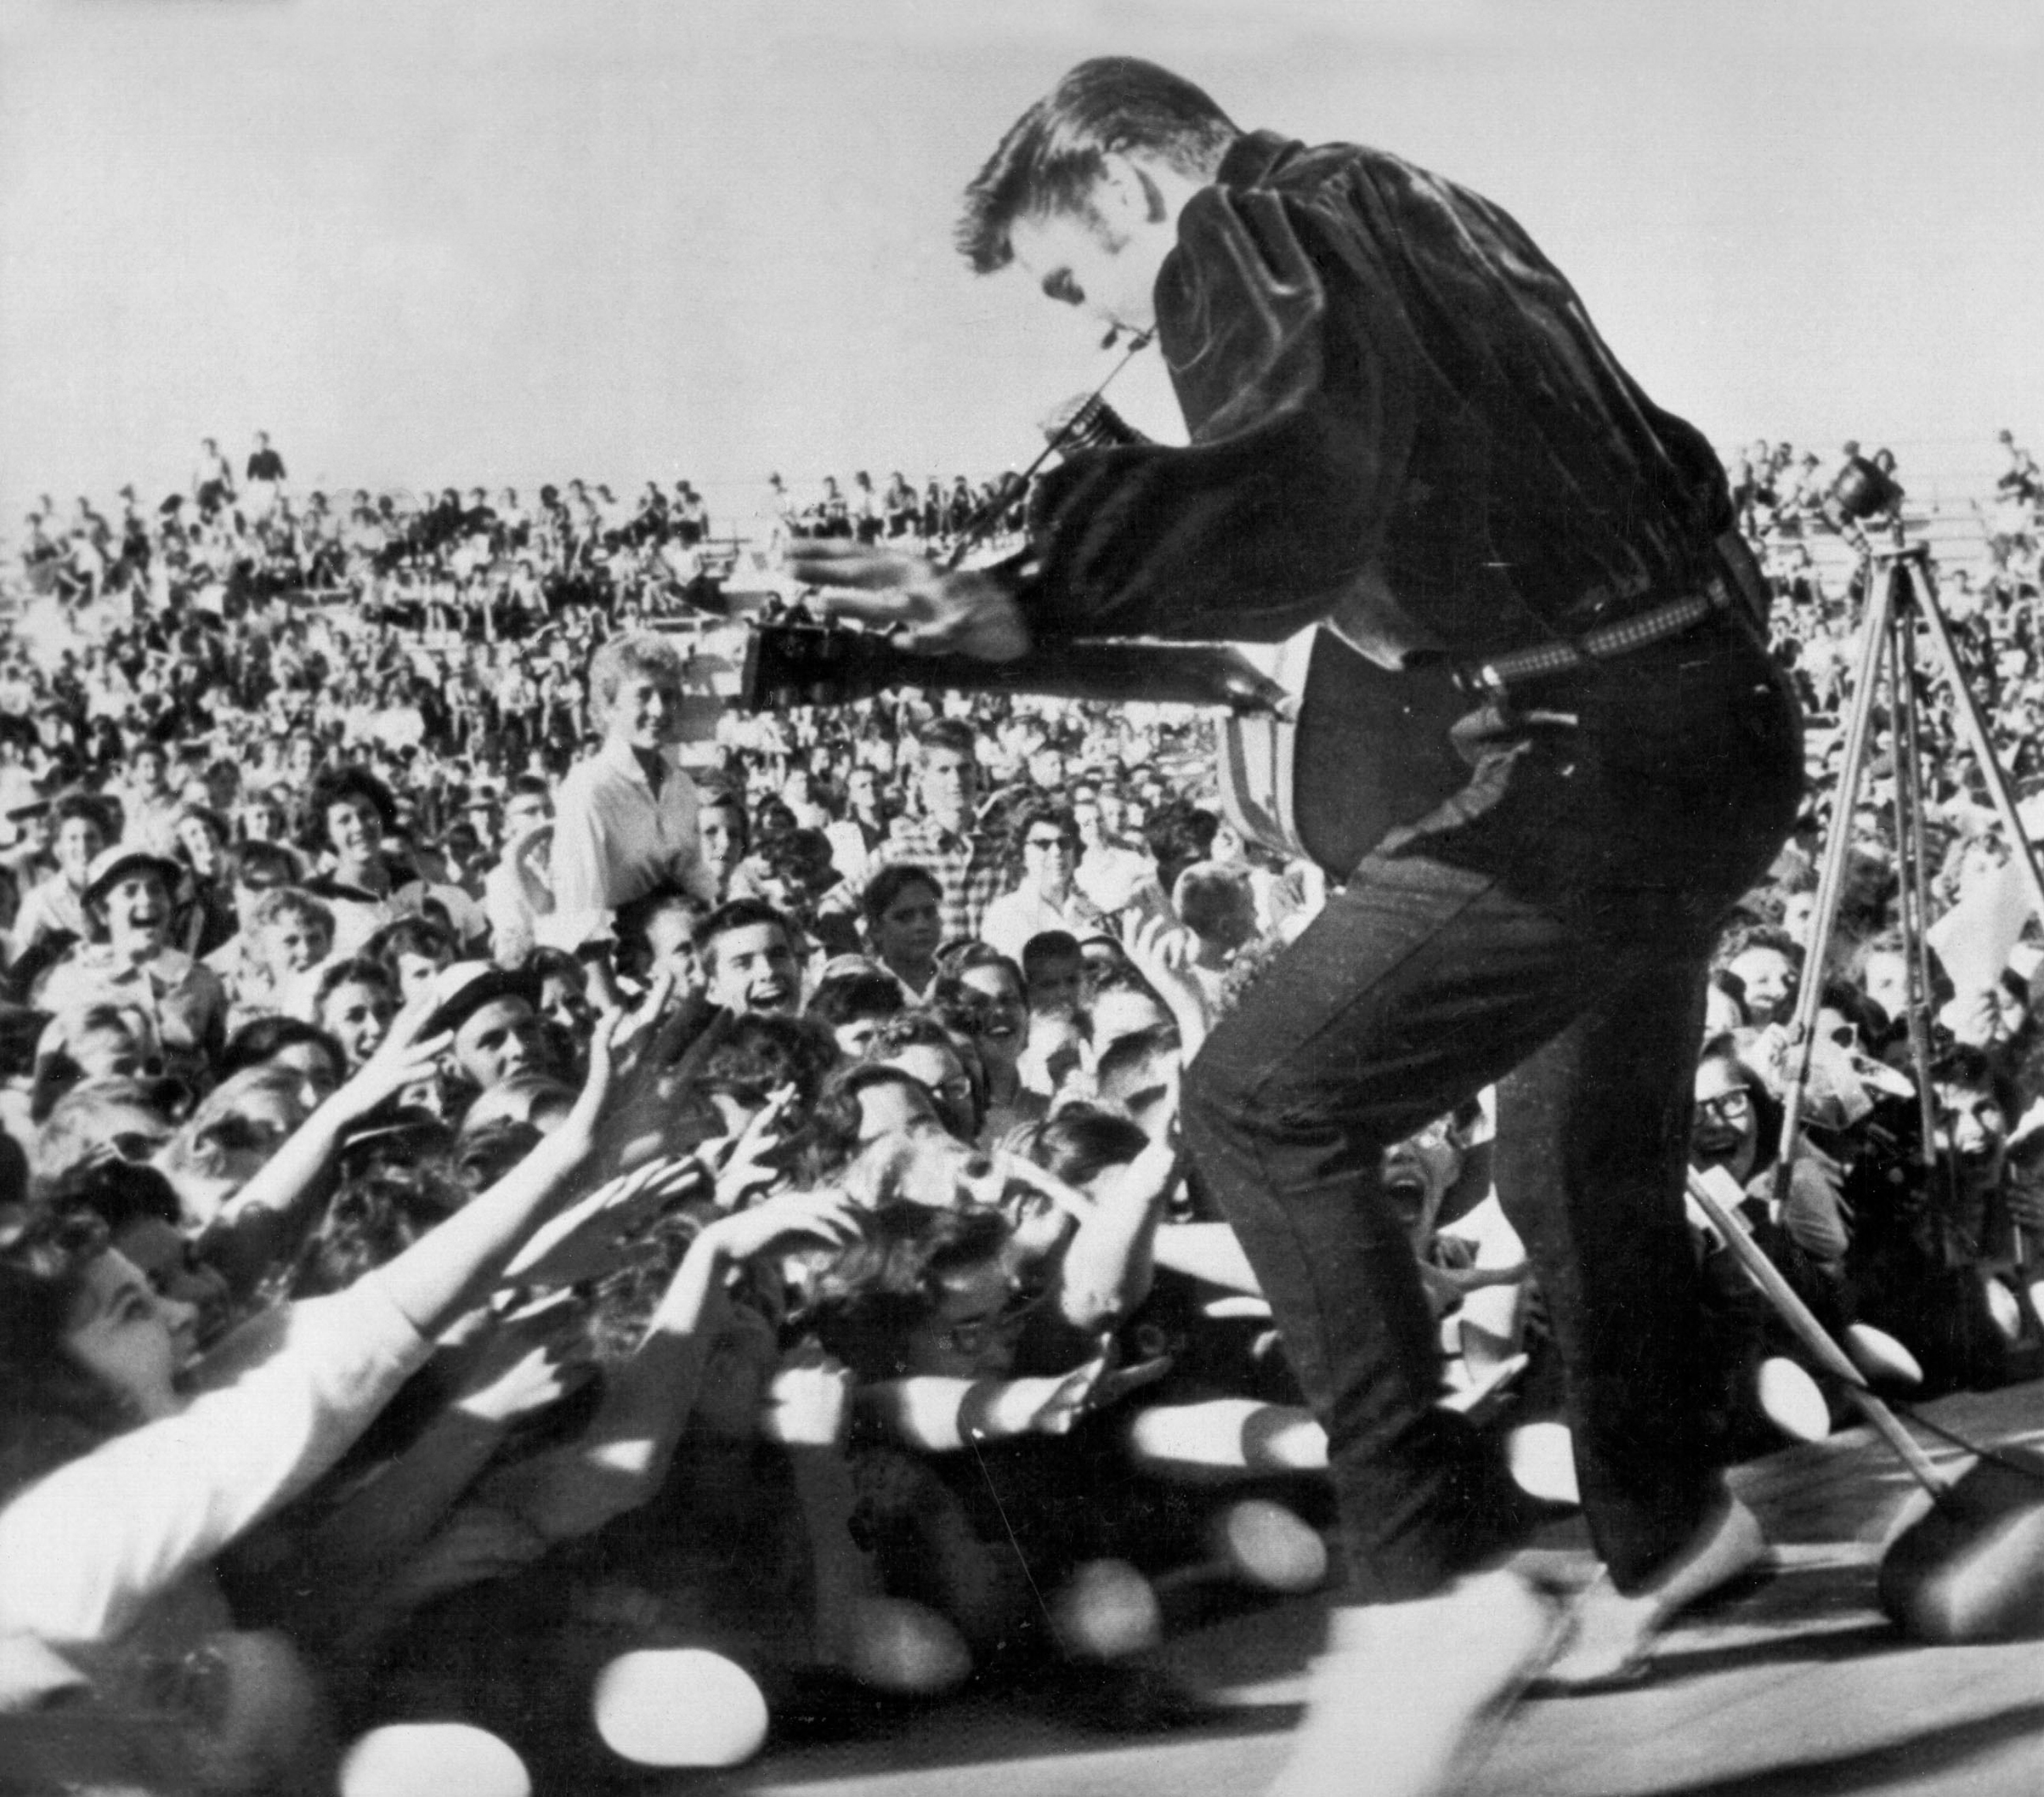 Elvis performs outside to adoring fans on Sept. 26, 1956 in his hometown of Tupelo, Miss.